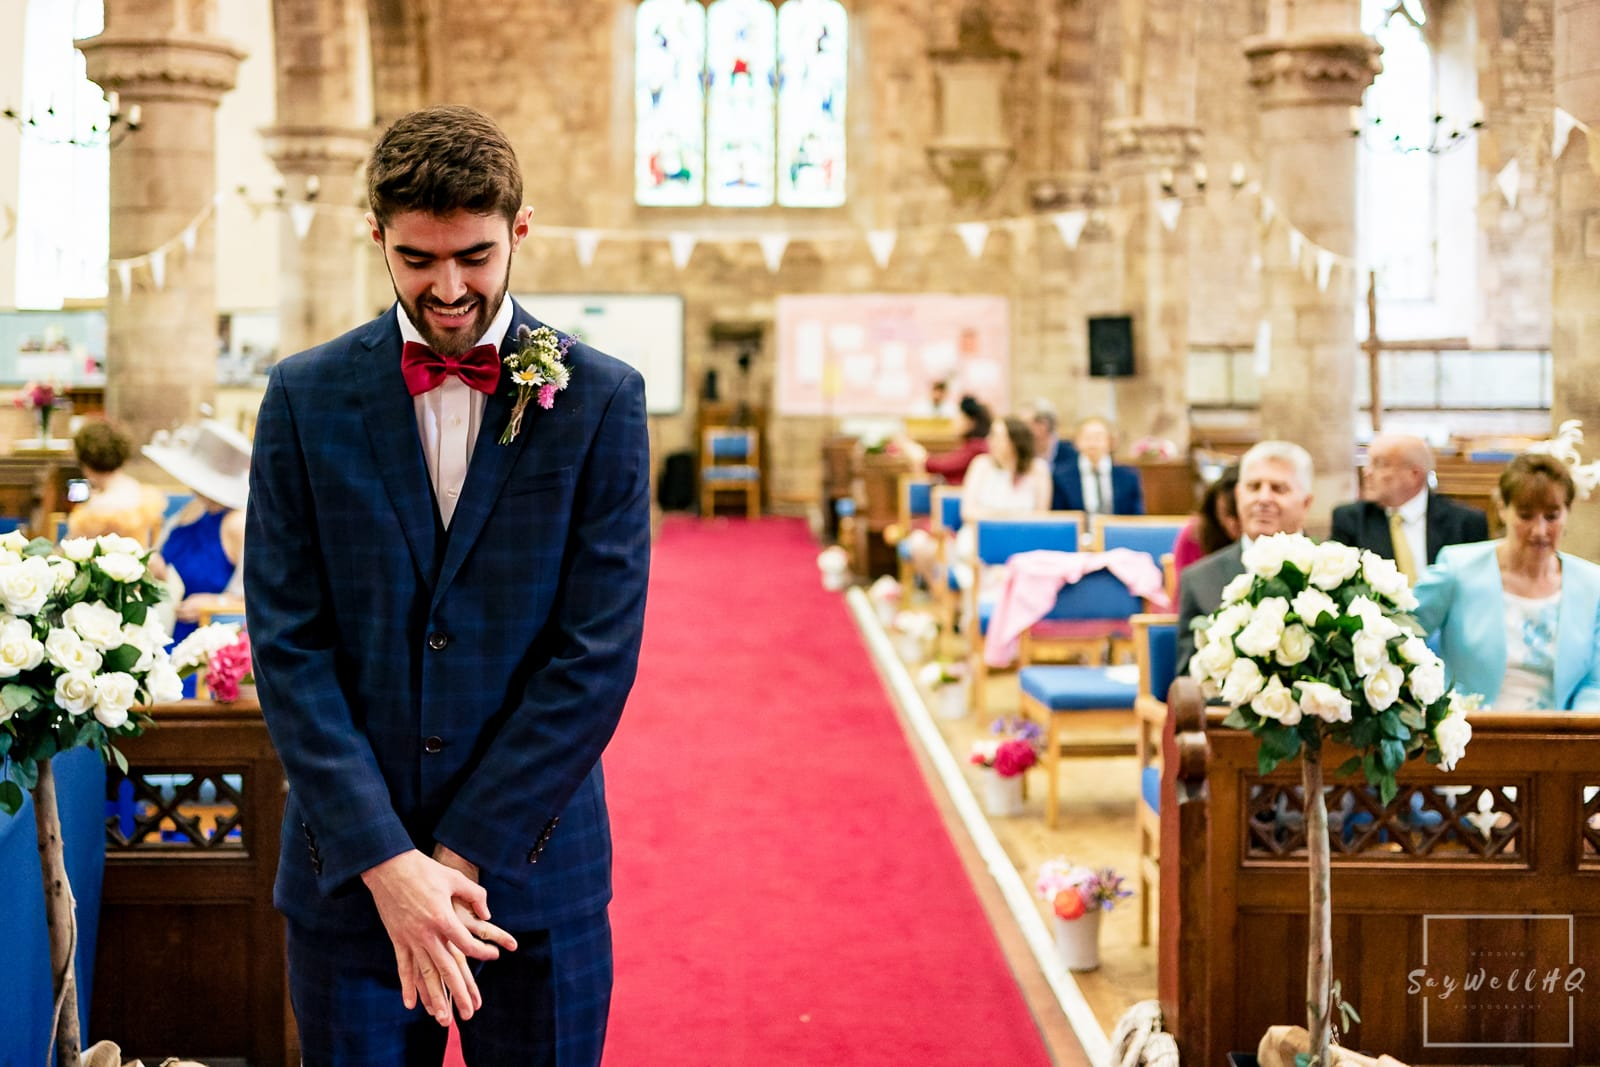 Hereford Church Wedding Photography - Groom looking very nervous before his wedding at a Hereford church wedding